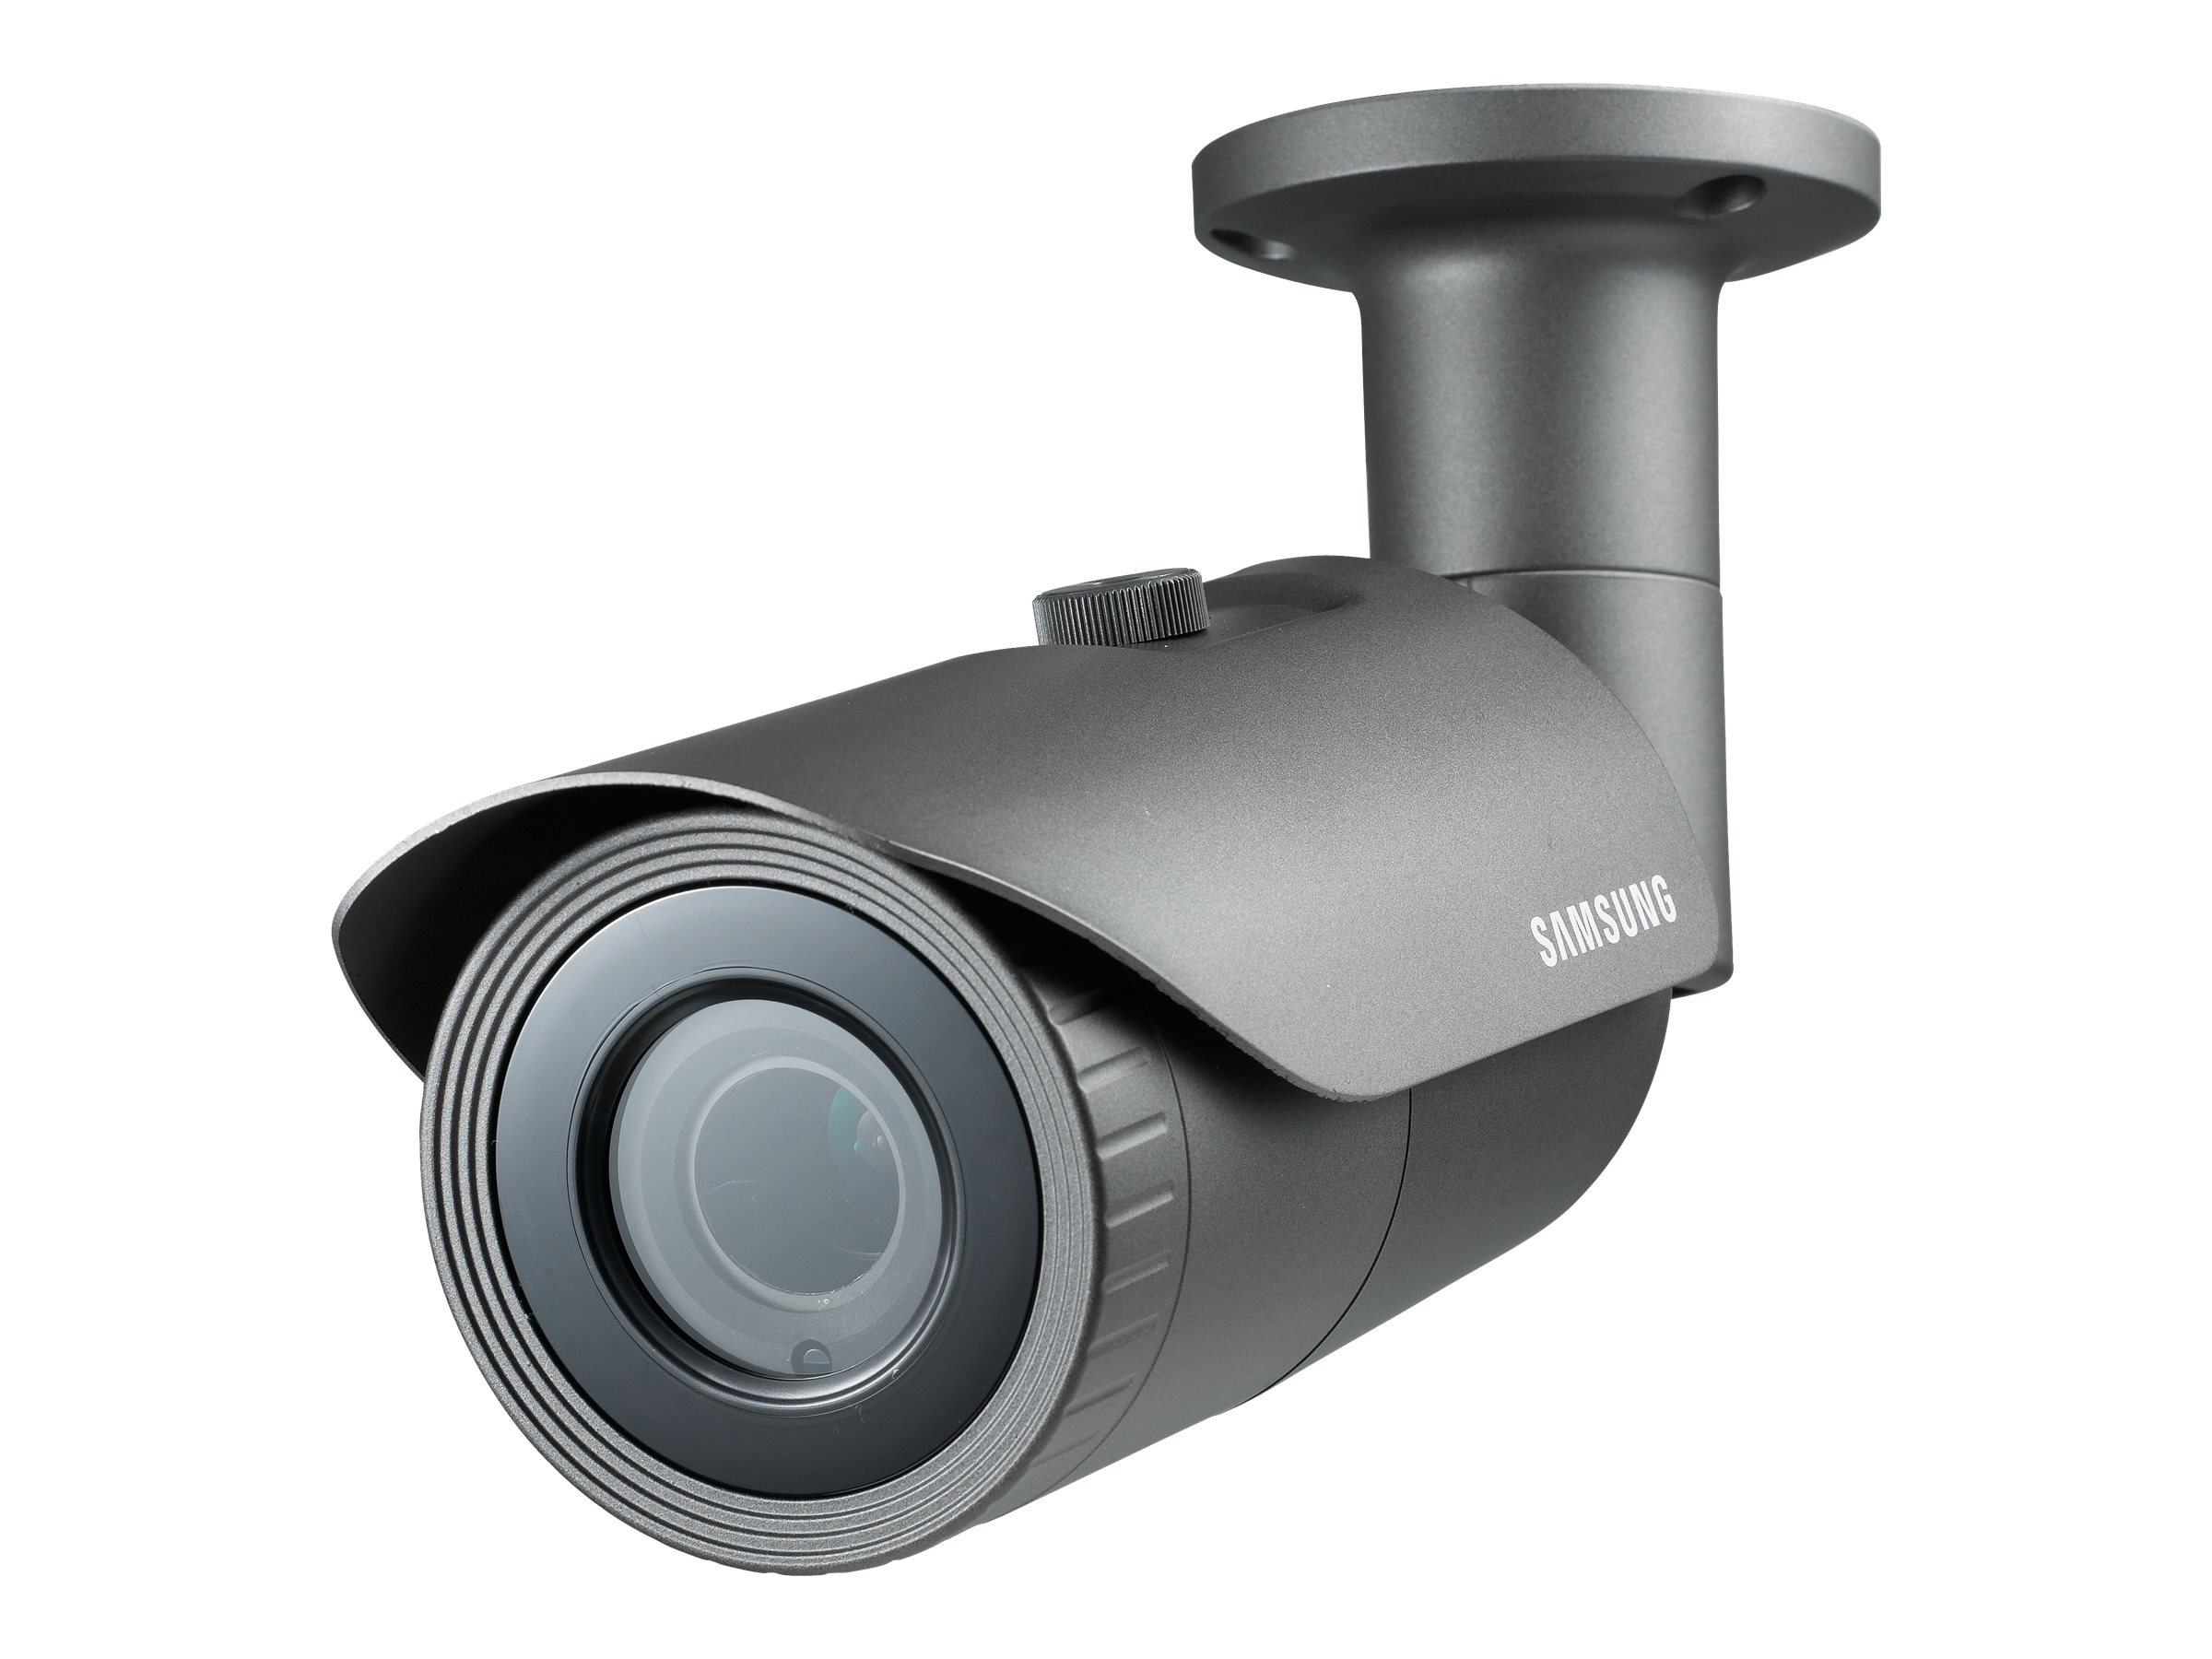 Samsung 1000TVL Premium Resolution Weatherproof IR Camera with 3-10mm Lens